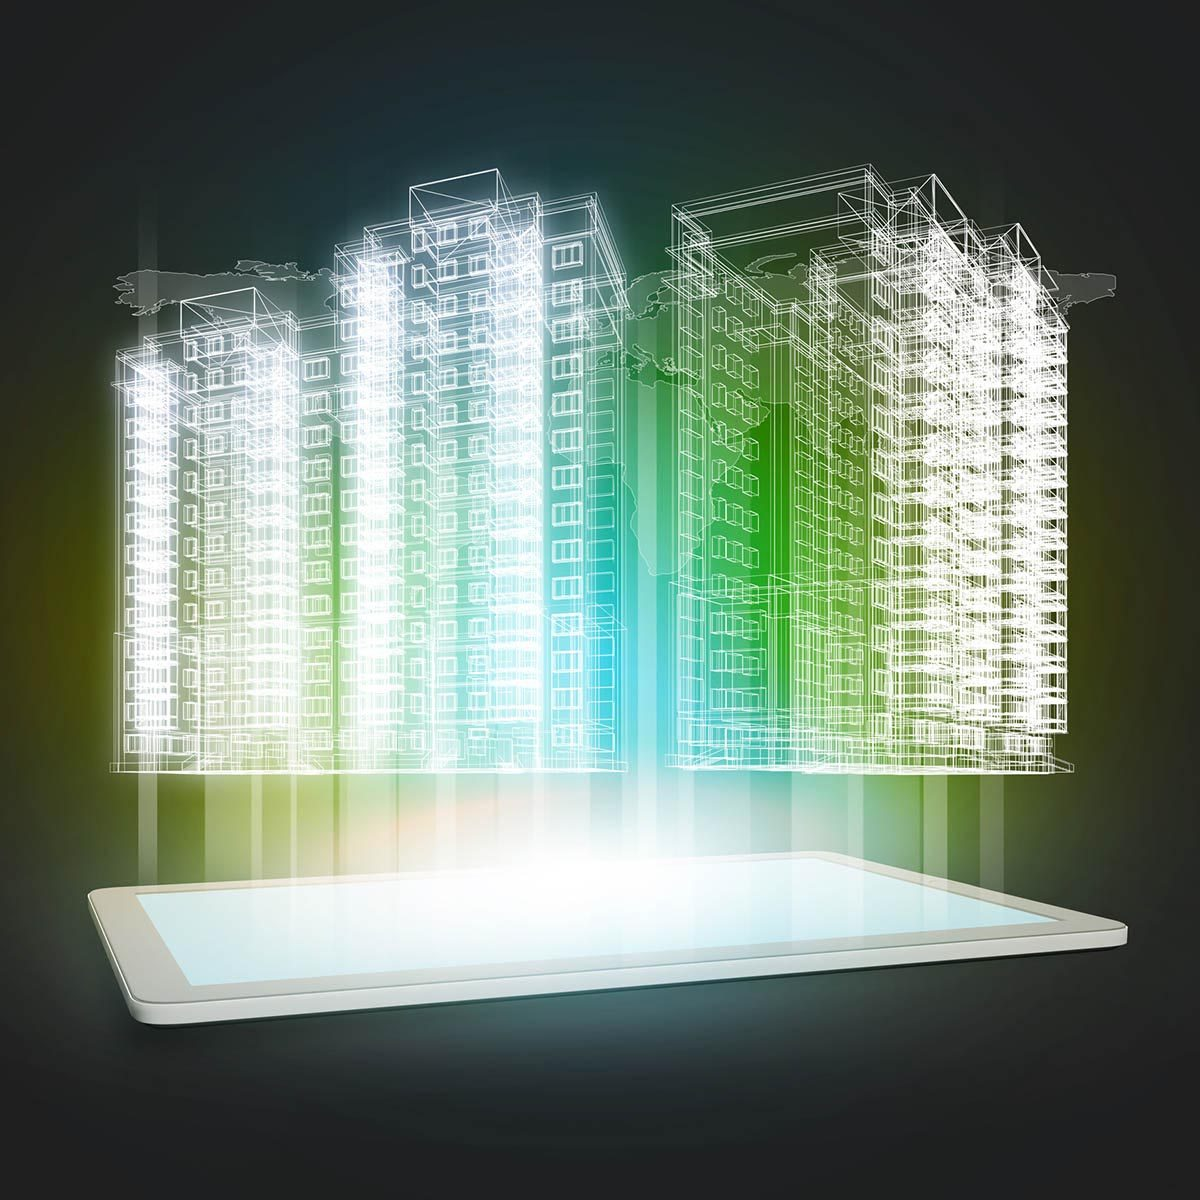 The value of BIM for the UK